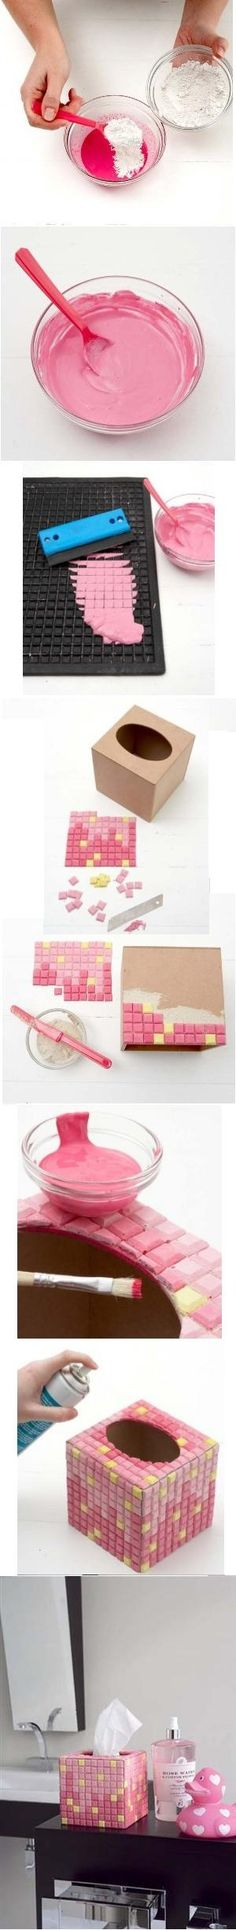 Create your own mosaic with gypsum powder Diy Arts And Crafts, Fun Crafts, Diy Y Manualidades, Diy Inspiration, Craft Tutorials, Projects To Try, Clay, Handmade, Chocolate Fondant